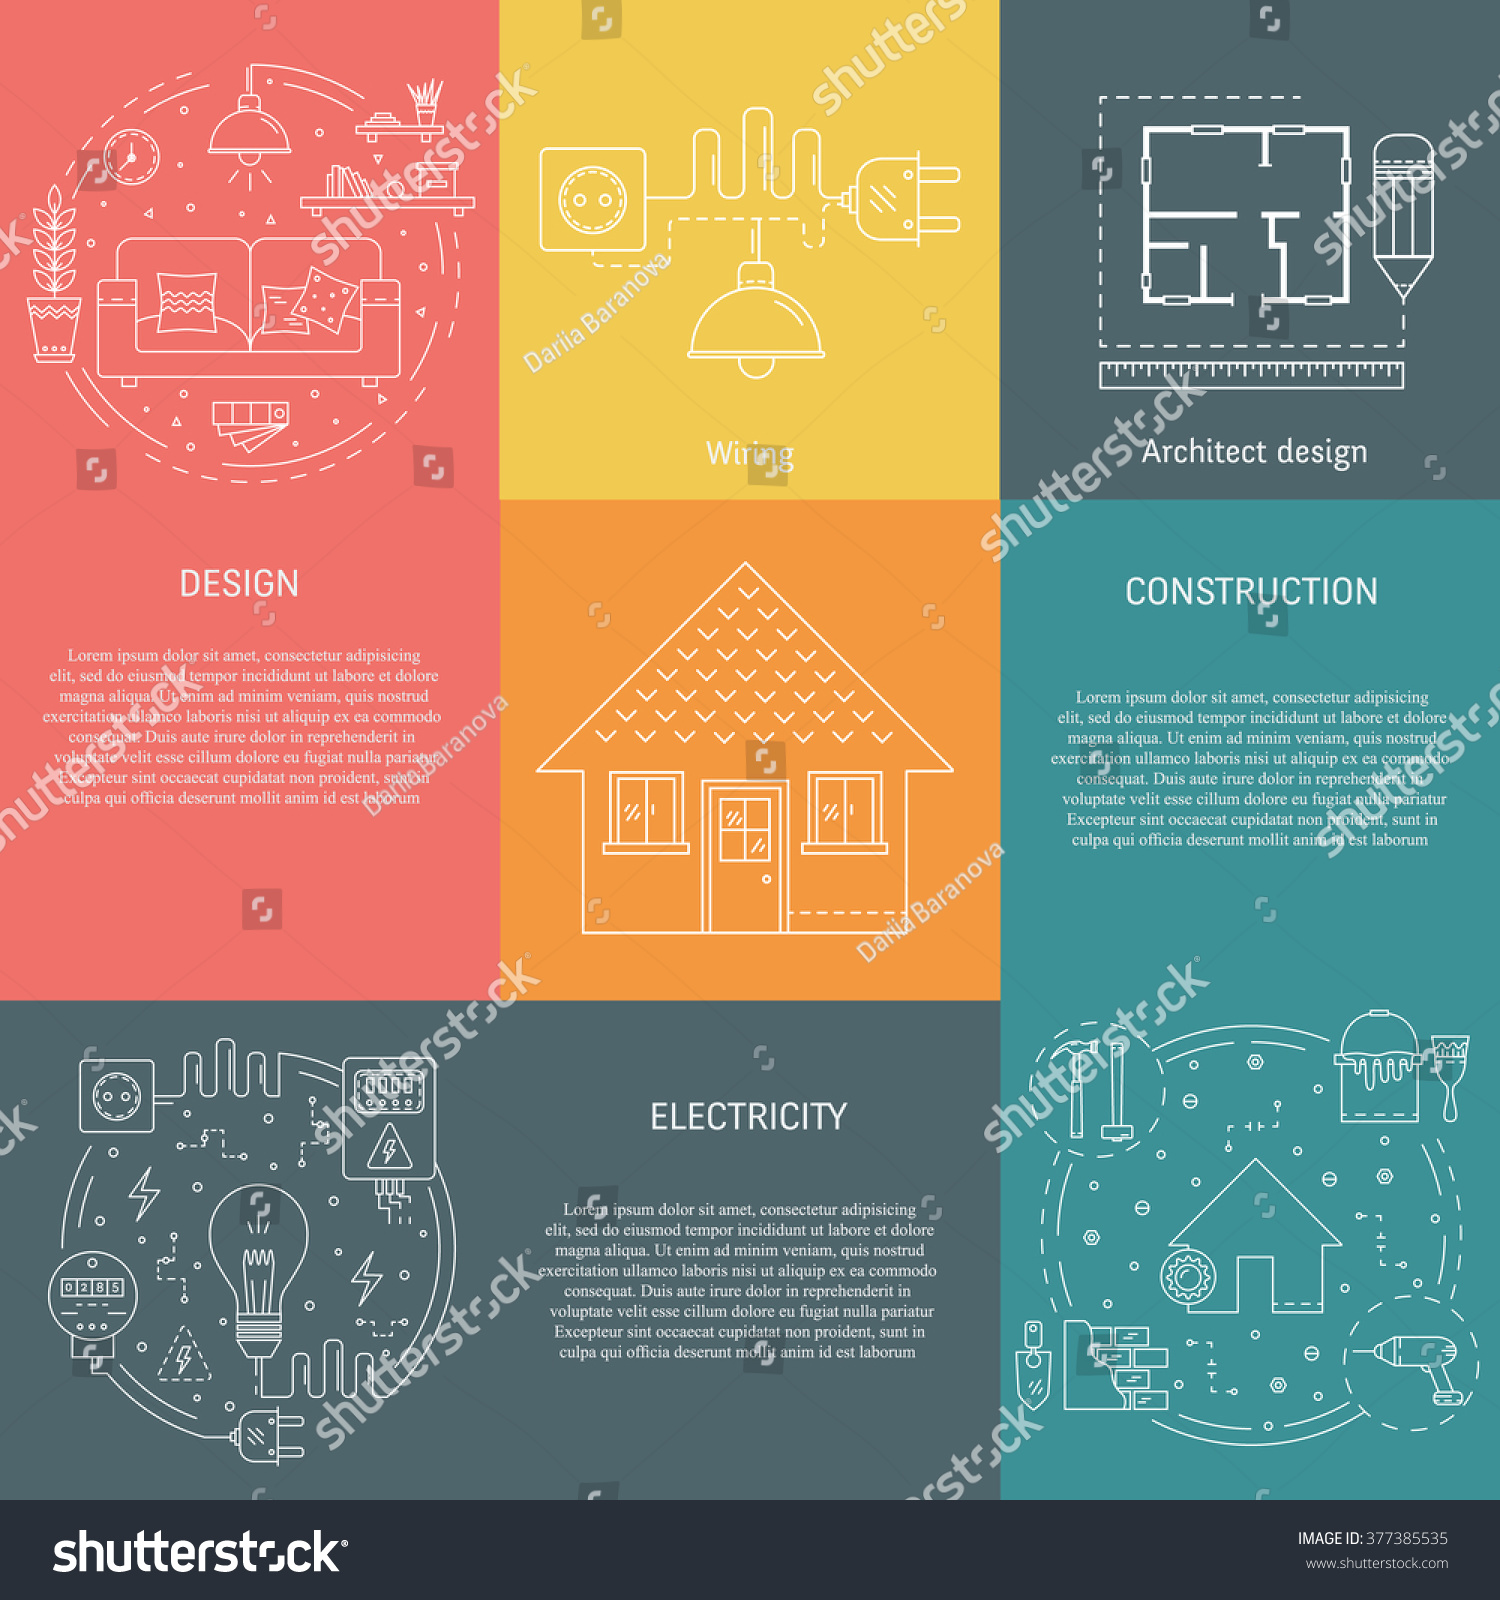 Vector Set Templates House Repair Elements Stock Royalty Wiring Strategy Of With Construction Electricity Interior